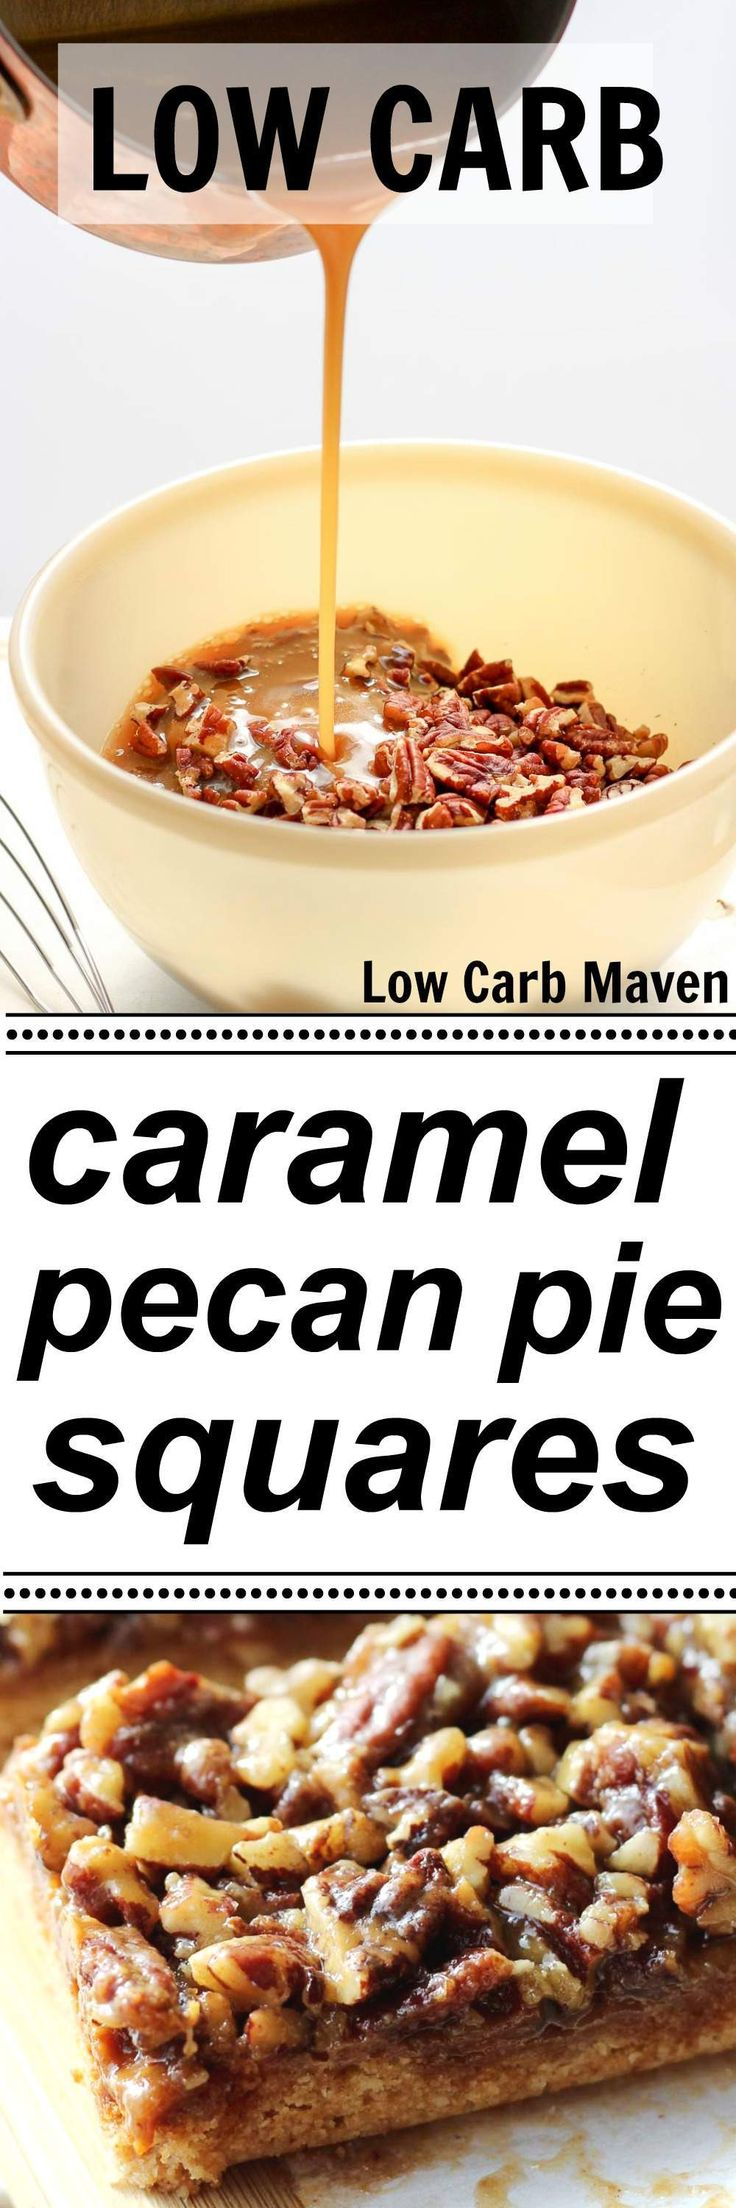 These low carb Caramel Pecan Pie Squares have the same sticky-buttery-sweet texture and flavor as your favorite pecan pie without the sugar or eggs. This yummy dessert is low carb, gluten-free, keto, and egg-free!